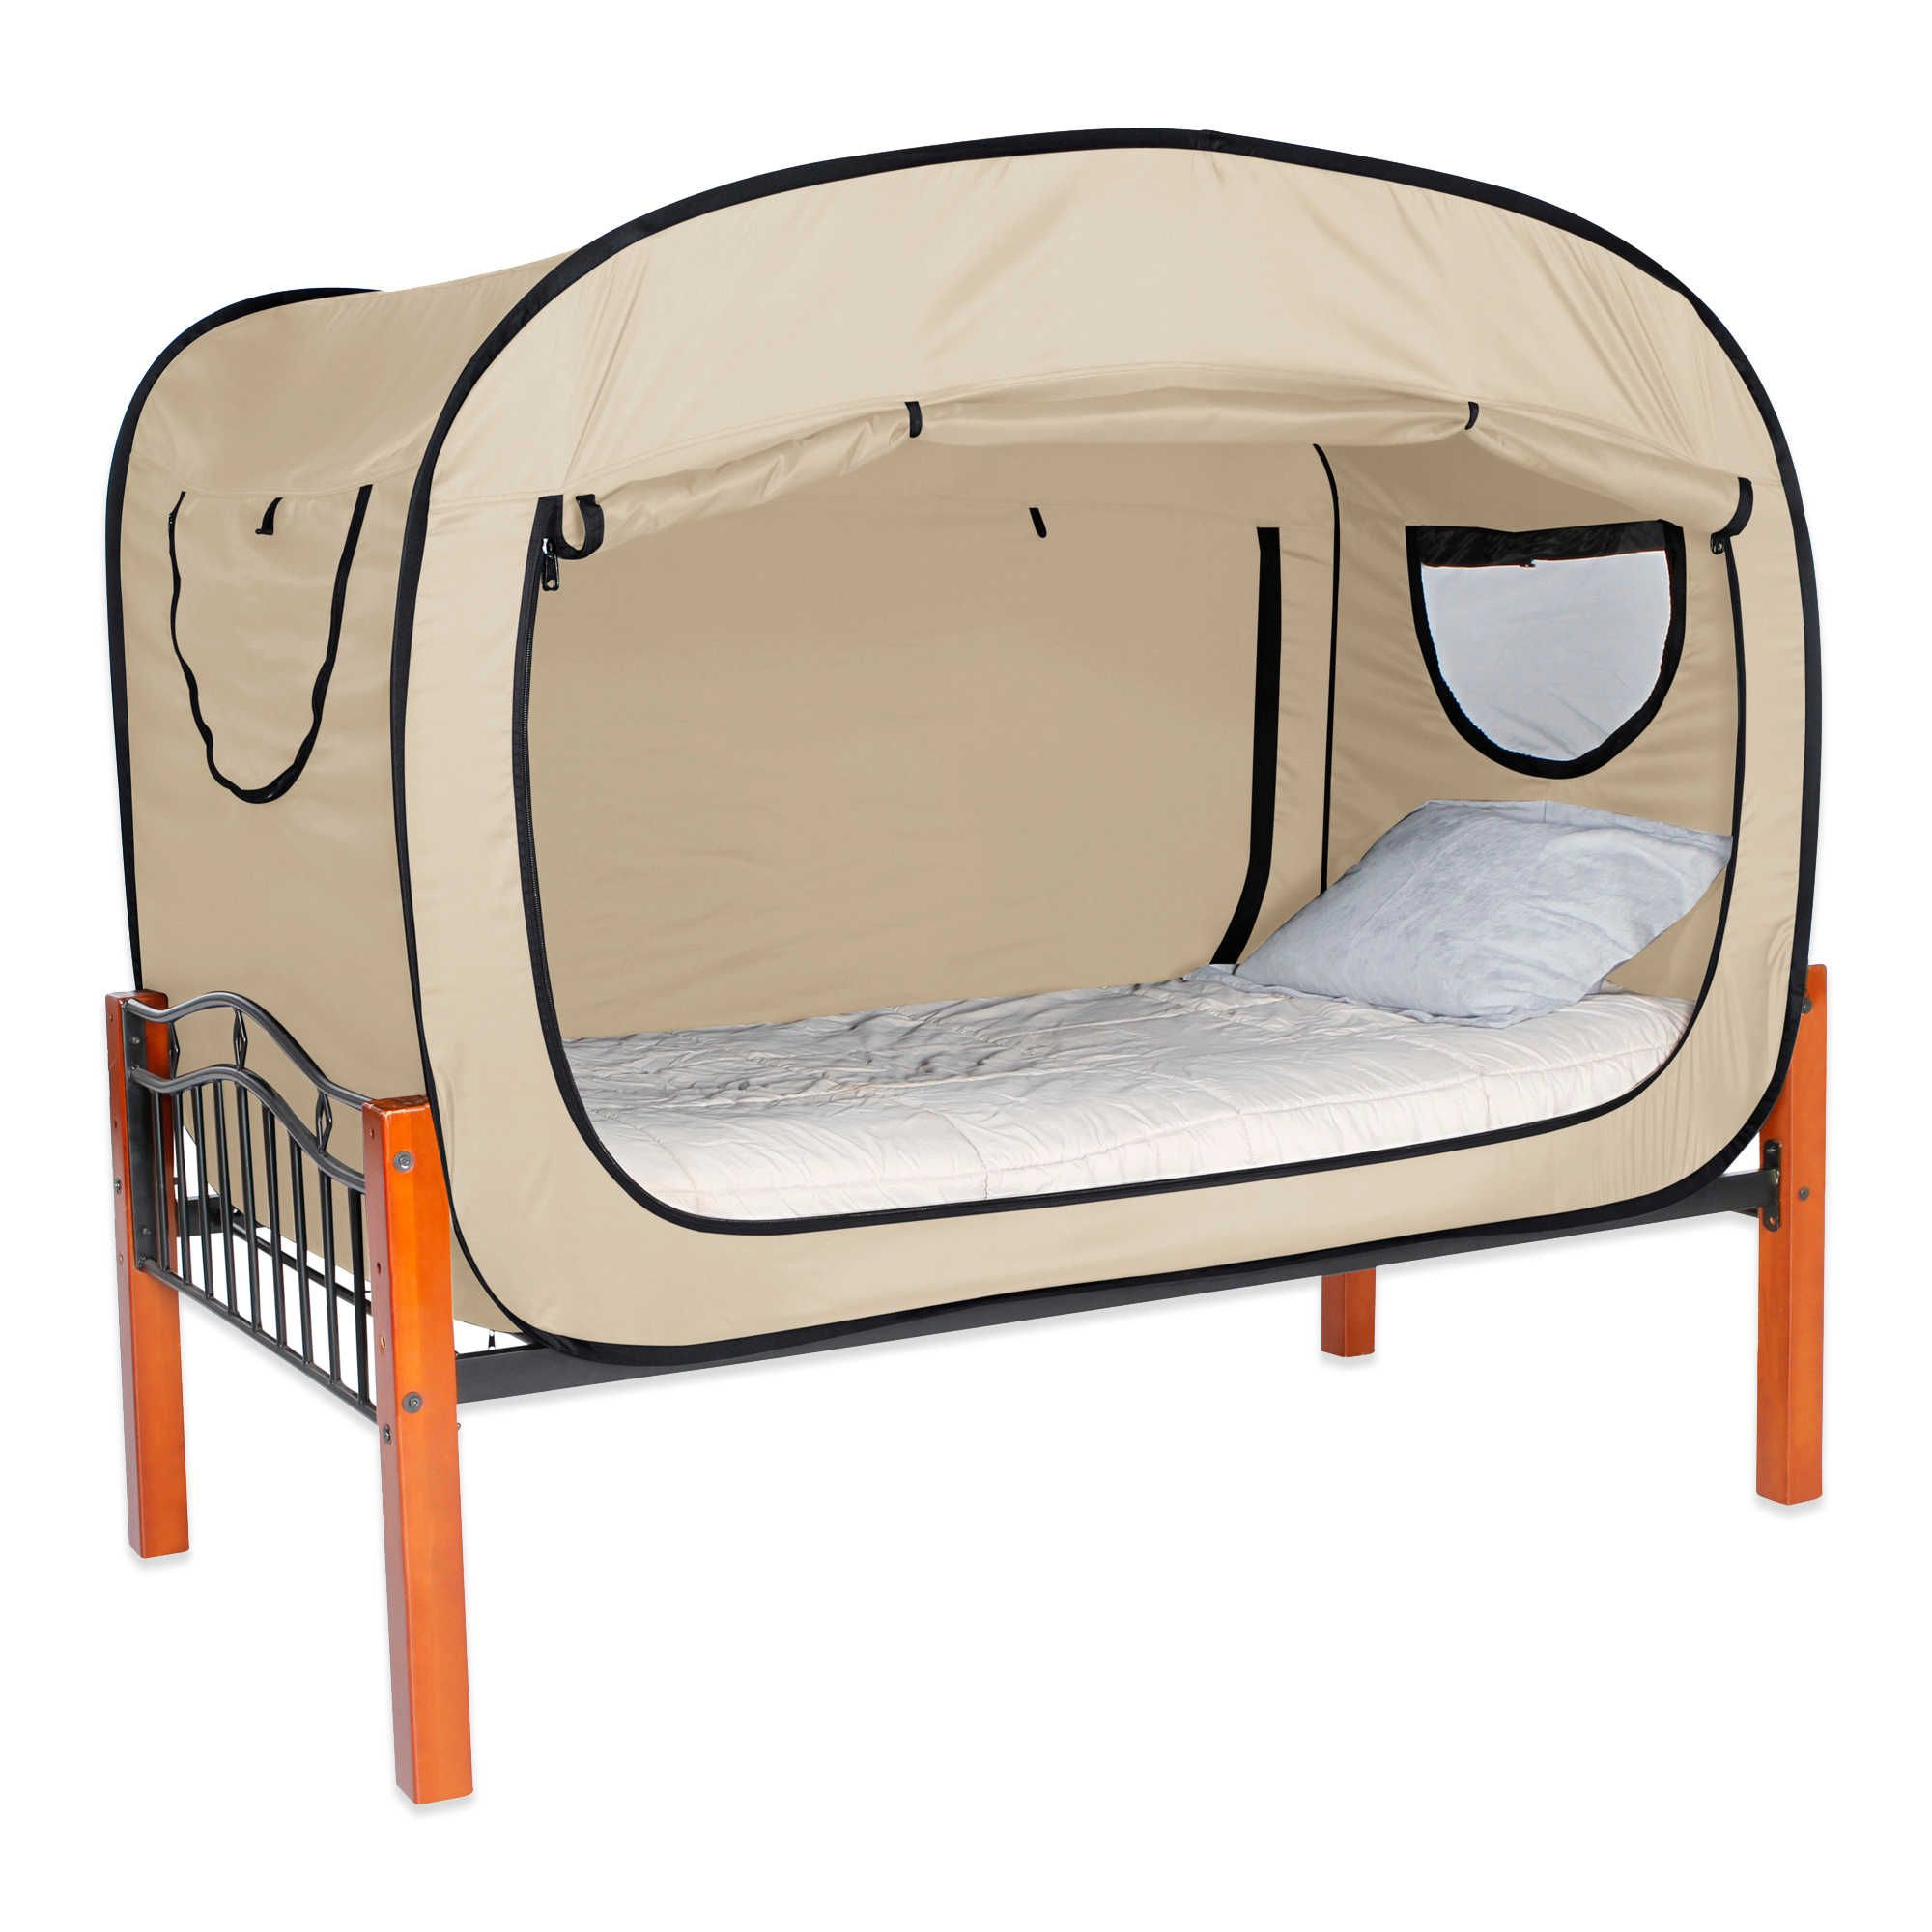 Invalid URL Bed tent twin, Bed tent, Privacy pop